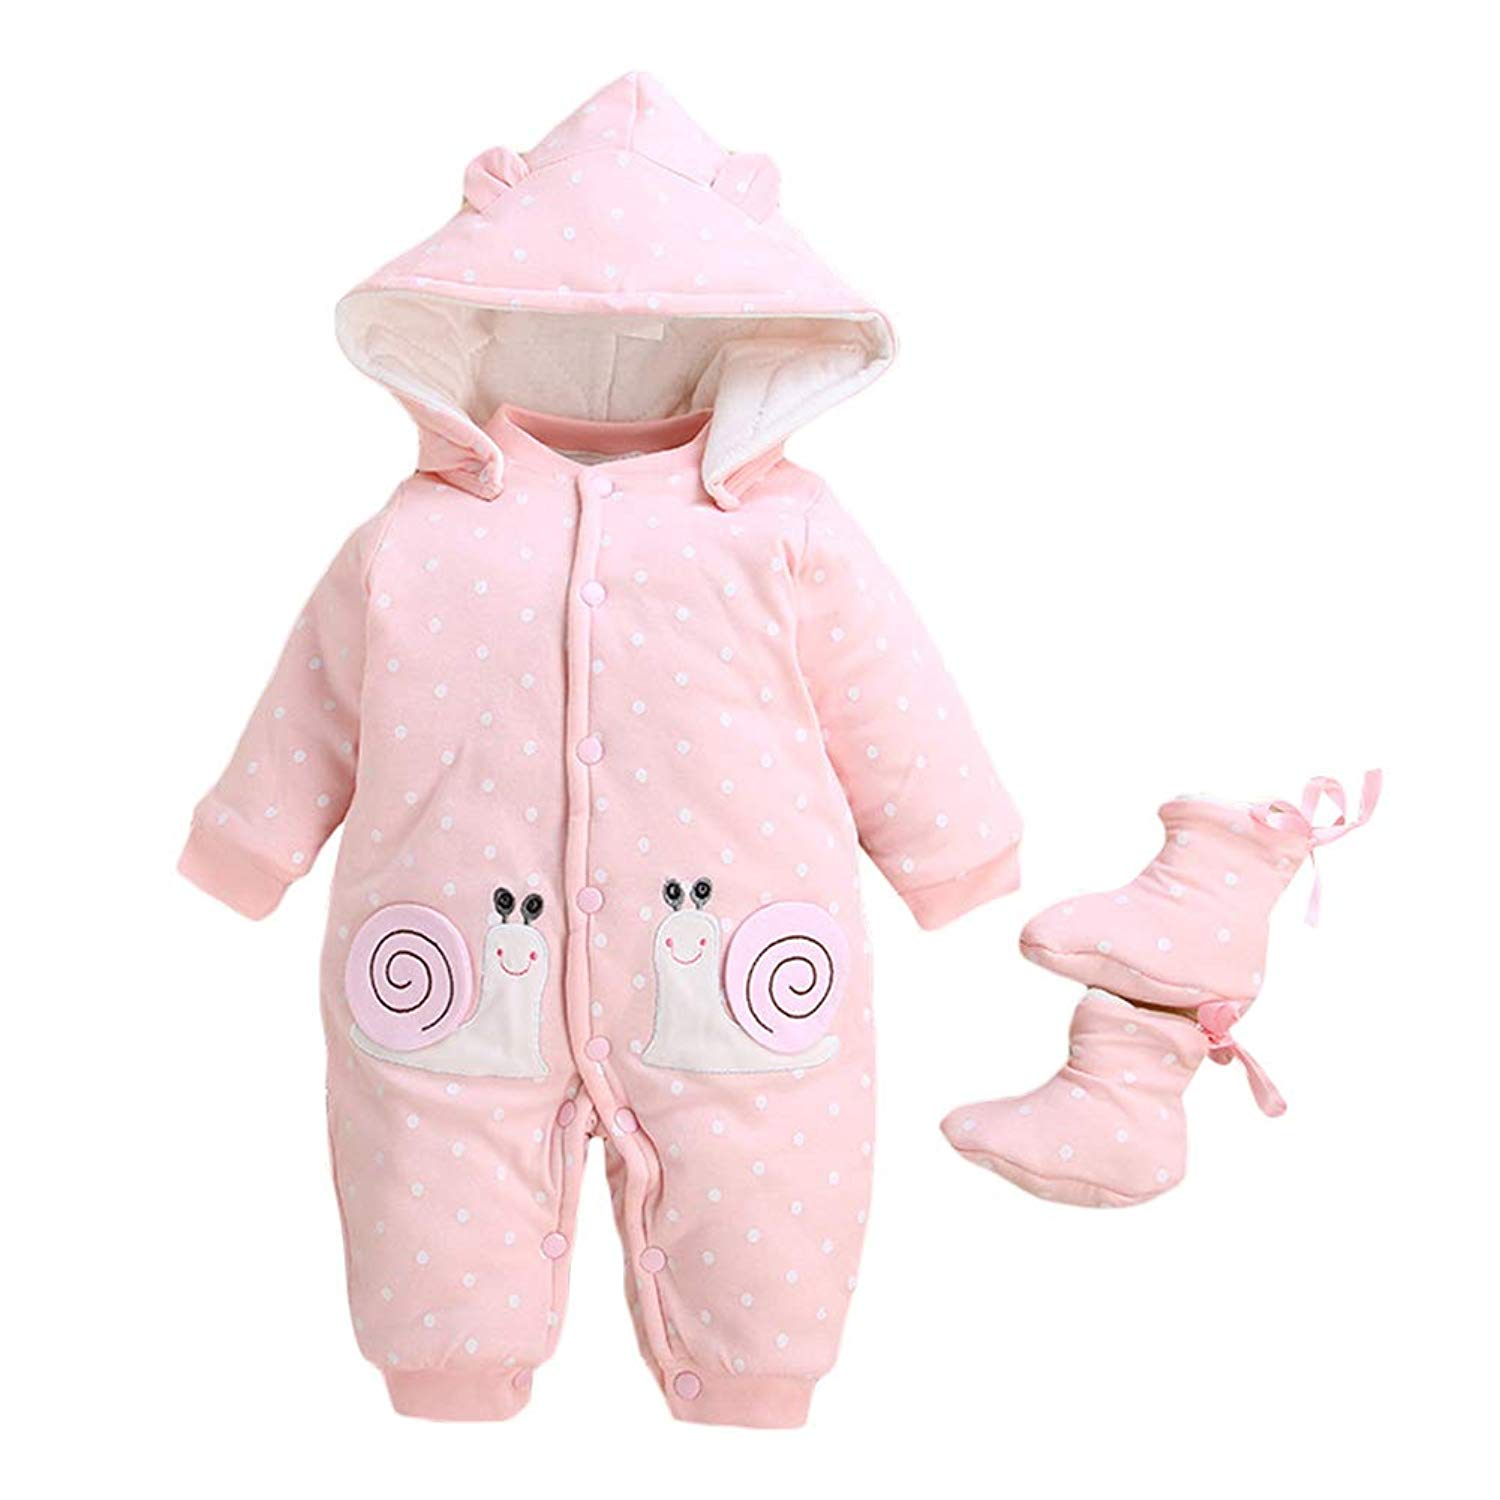 b6ae12b6d Get Quotations · Happy childhood Unisex Baby Thick Jumpsuit Outfit Warm  Infant Romper Suit Toddler Clothing Bodysuit